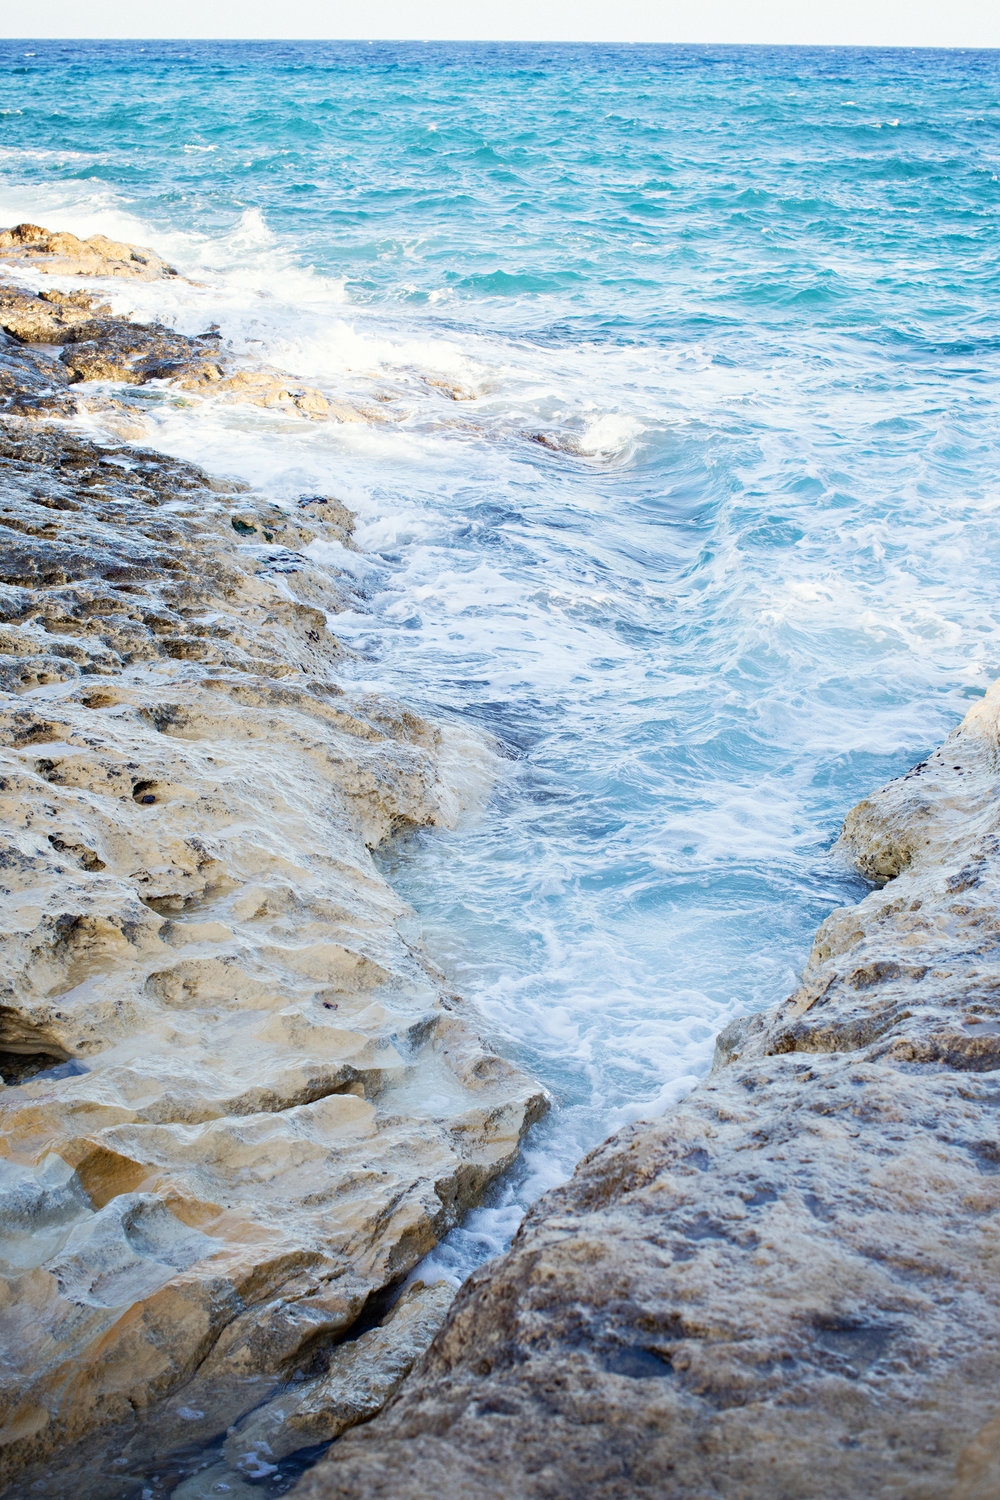 stormy sea, windy, spring in malta, turquoise water, photographer malta